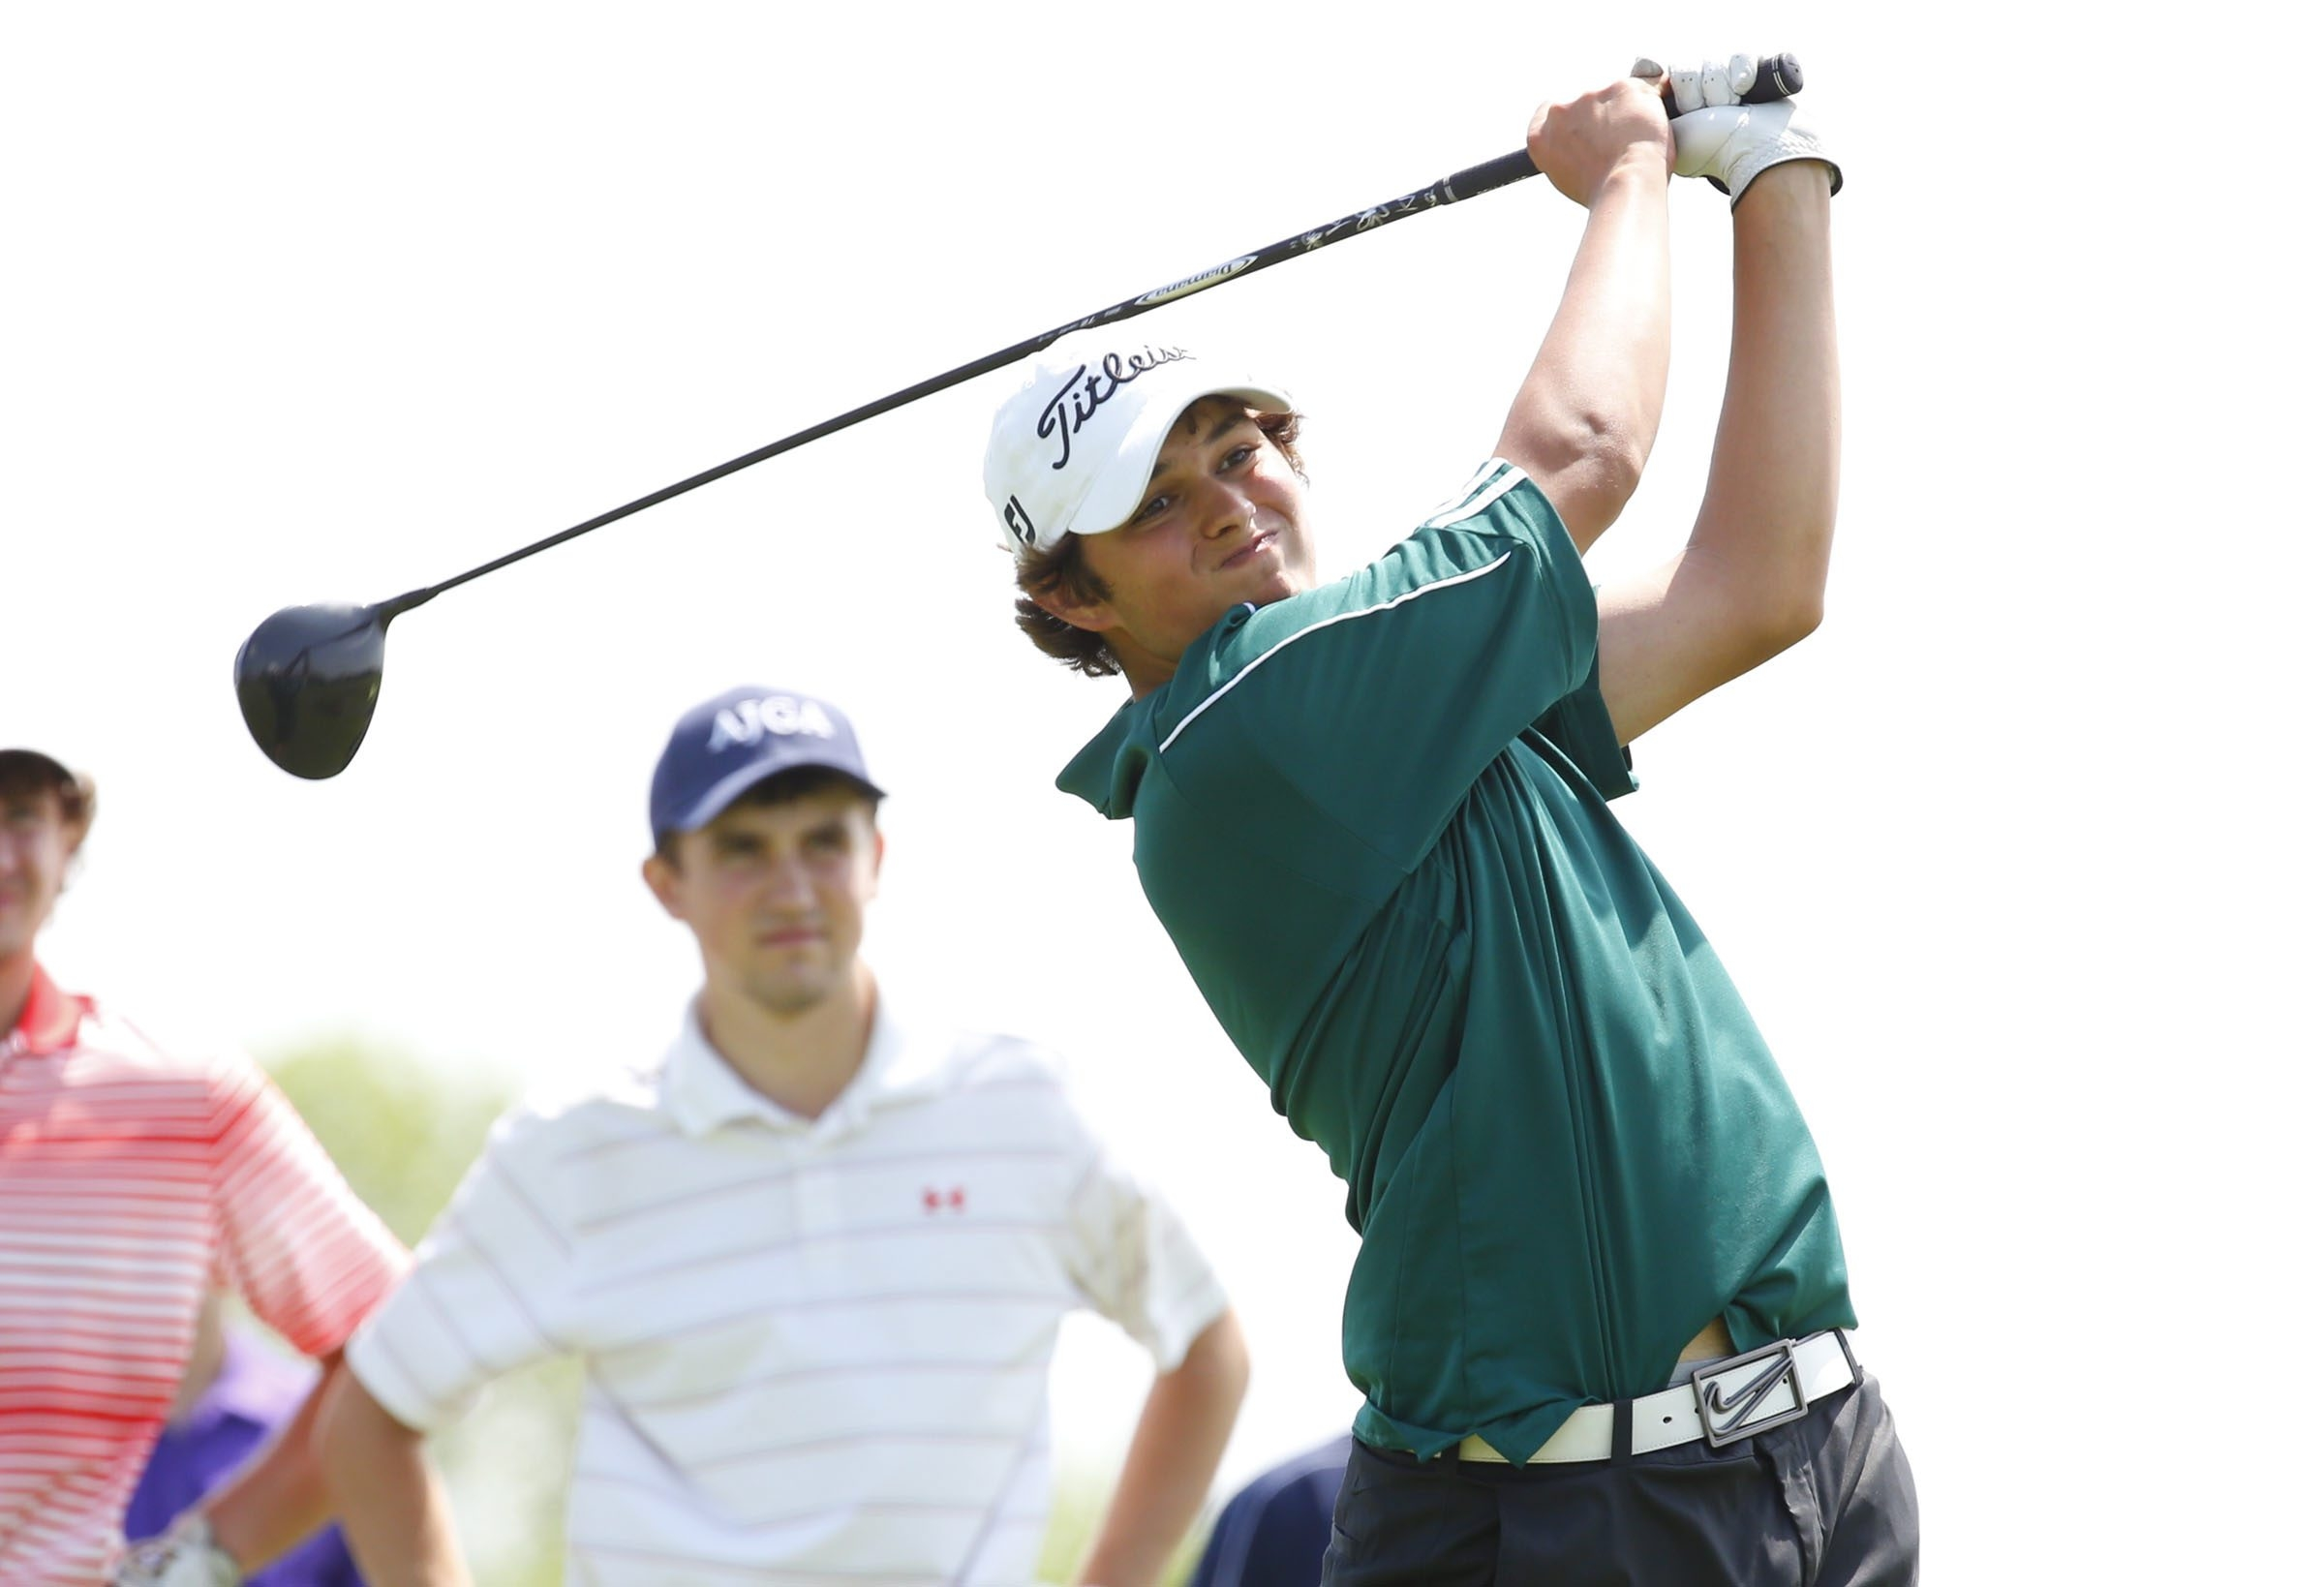 Williamsville North's Ben Reichert, shown here teeing off during his victory at the Section VI tournament last month, was one of eight golfers to qualify for the prestigious Porter Cup Tournament on Monday. (Harry Scull Jr./Buffalo News file photo)